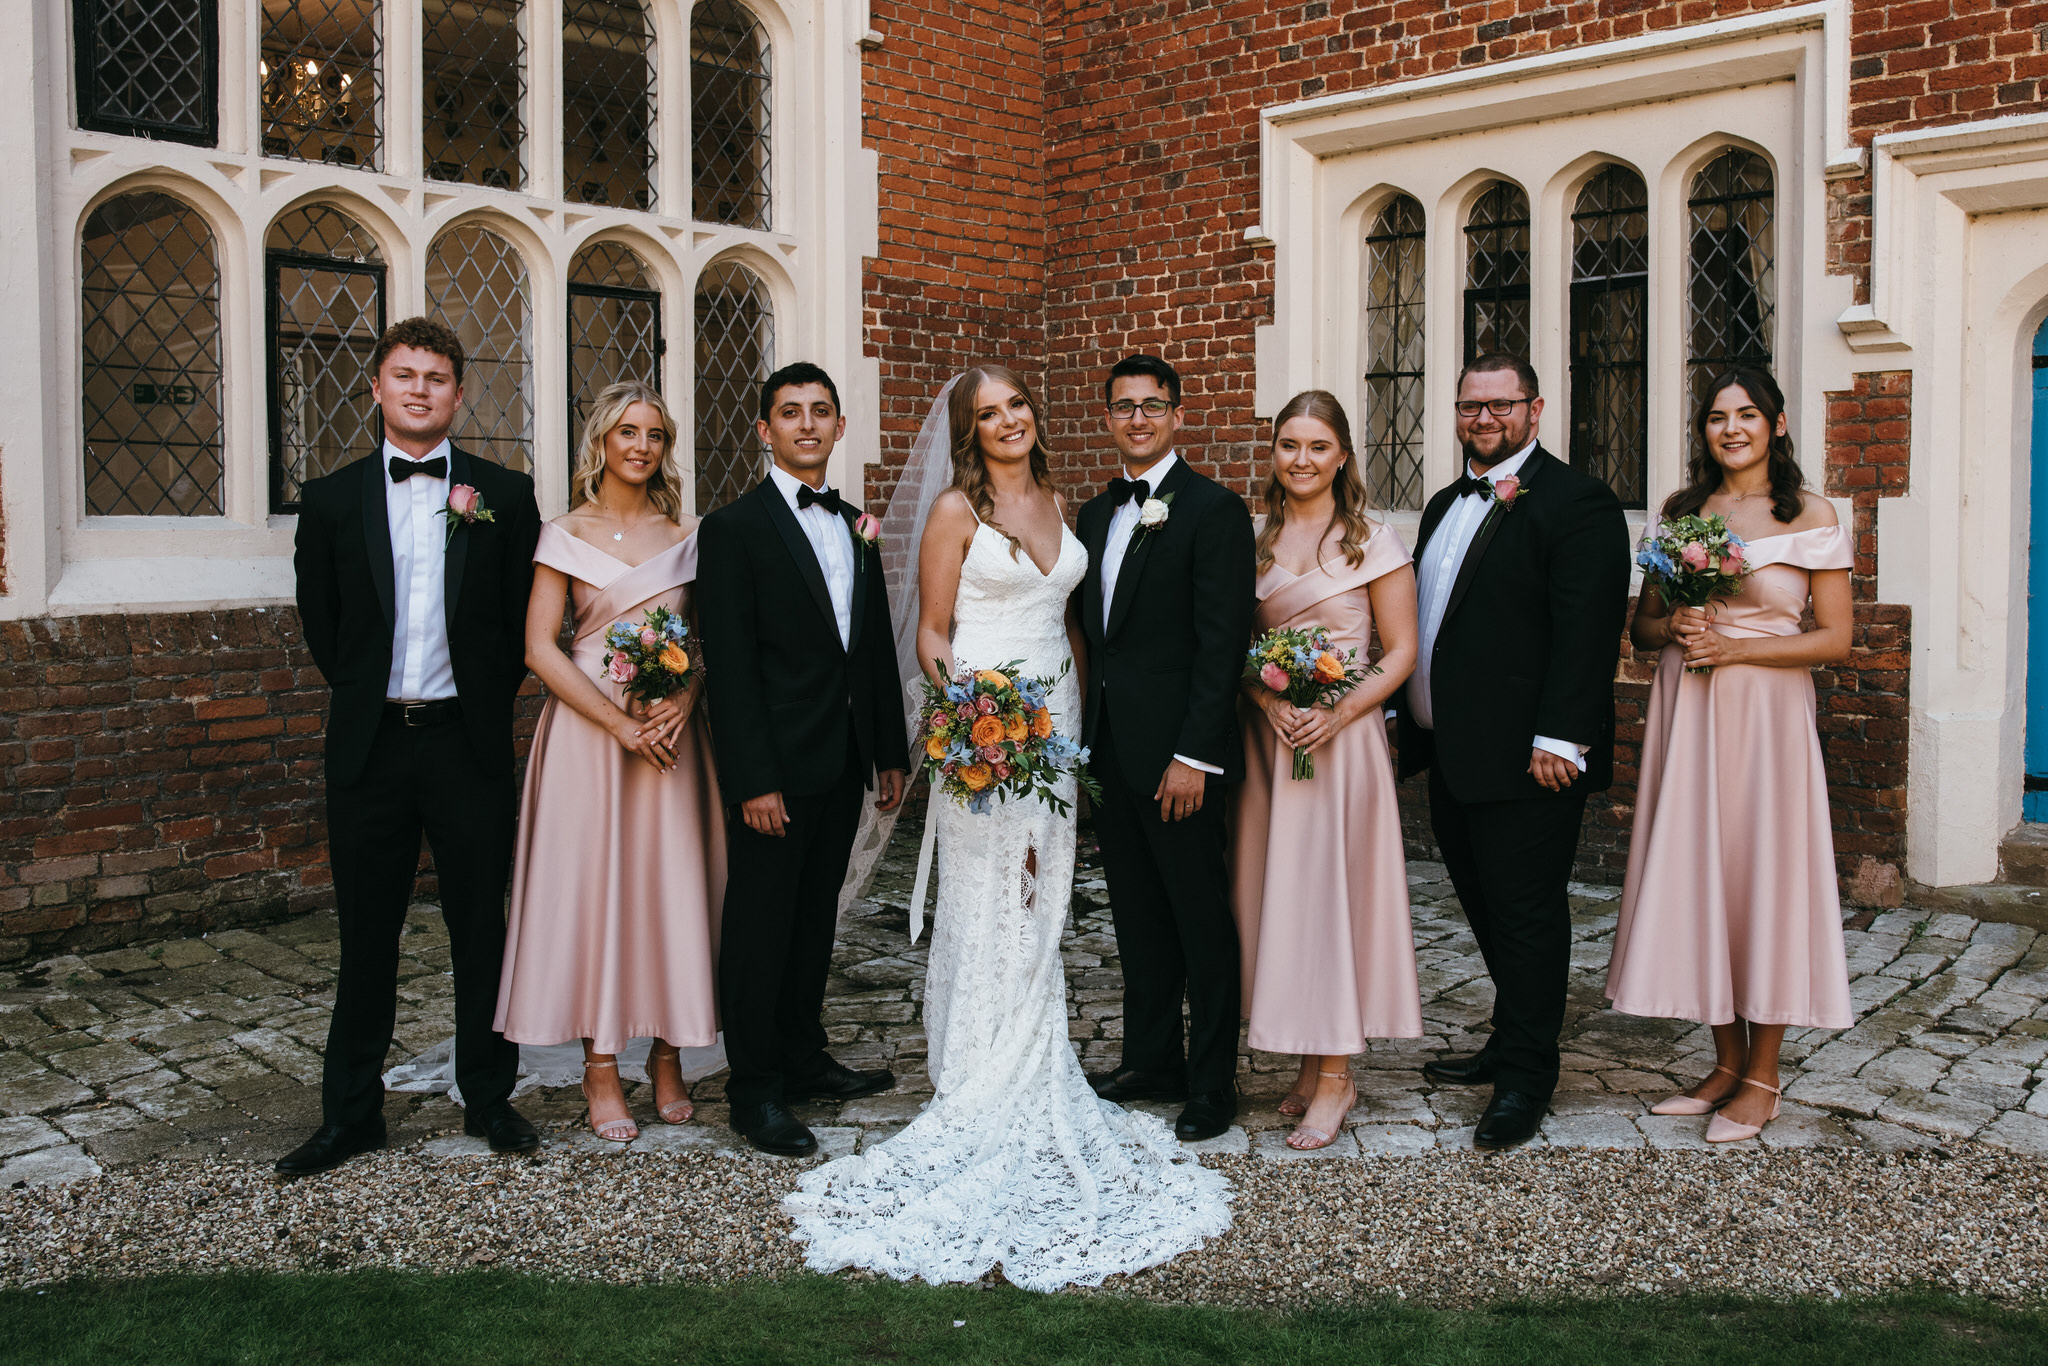 Bridal party group photo at Gosfield Hall wedding